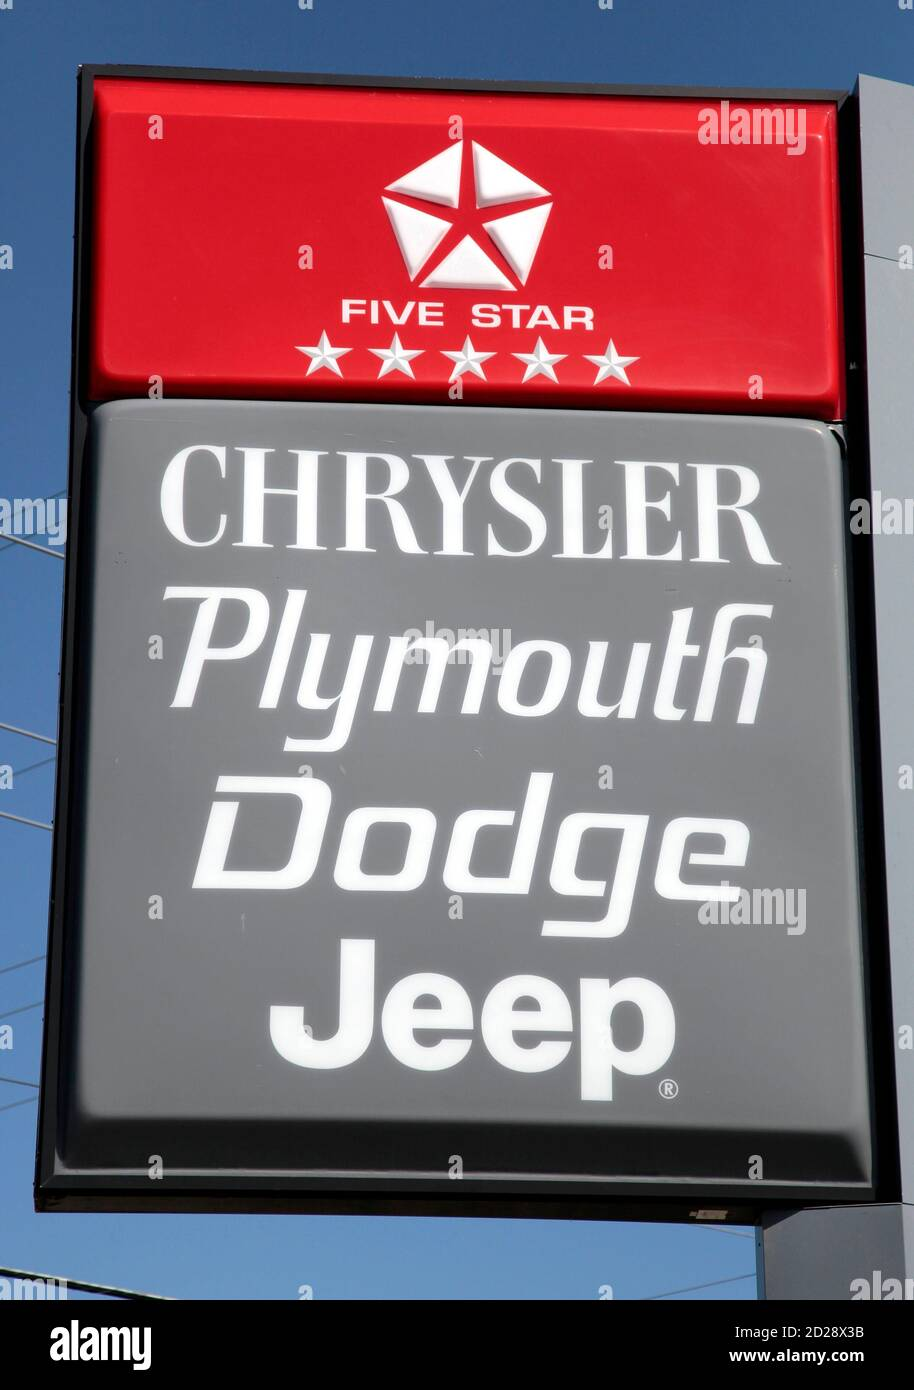 frankenmuth mi high resolution stock photography and images alamy https www alamy com a chrysler dealership sign is seen at the schaefer bierlein auto dealership in frankenmuth michigan march 20 2009 the business was first founded by bavarian immigrant george m schaefer in 1852 as a blacksmith shop before becoming frankenmuths first car dealer in 1914 and remaining a family business for over a 100 years picture taken march 20 2009 reutersrebecca cook united states transport business image380053503 html